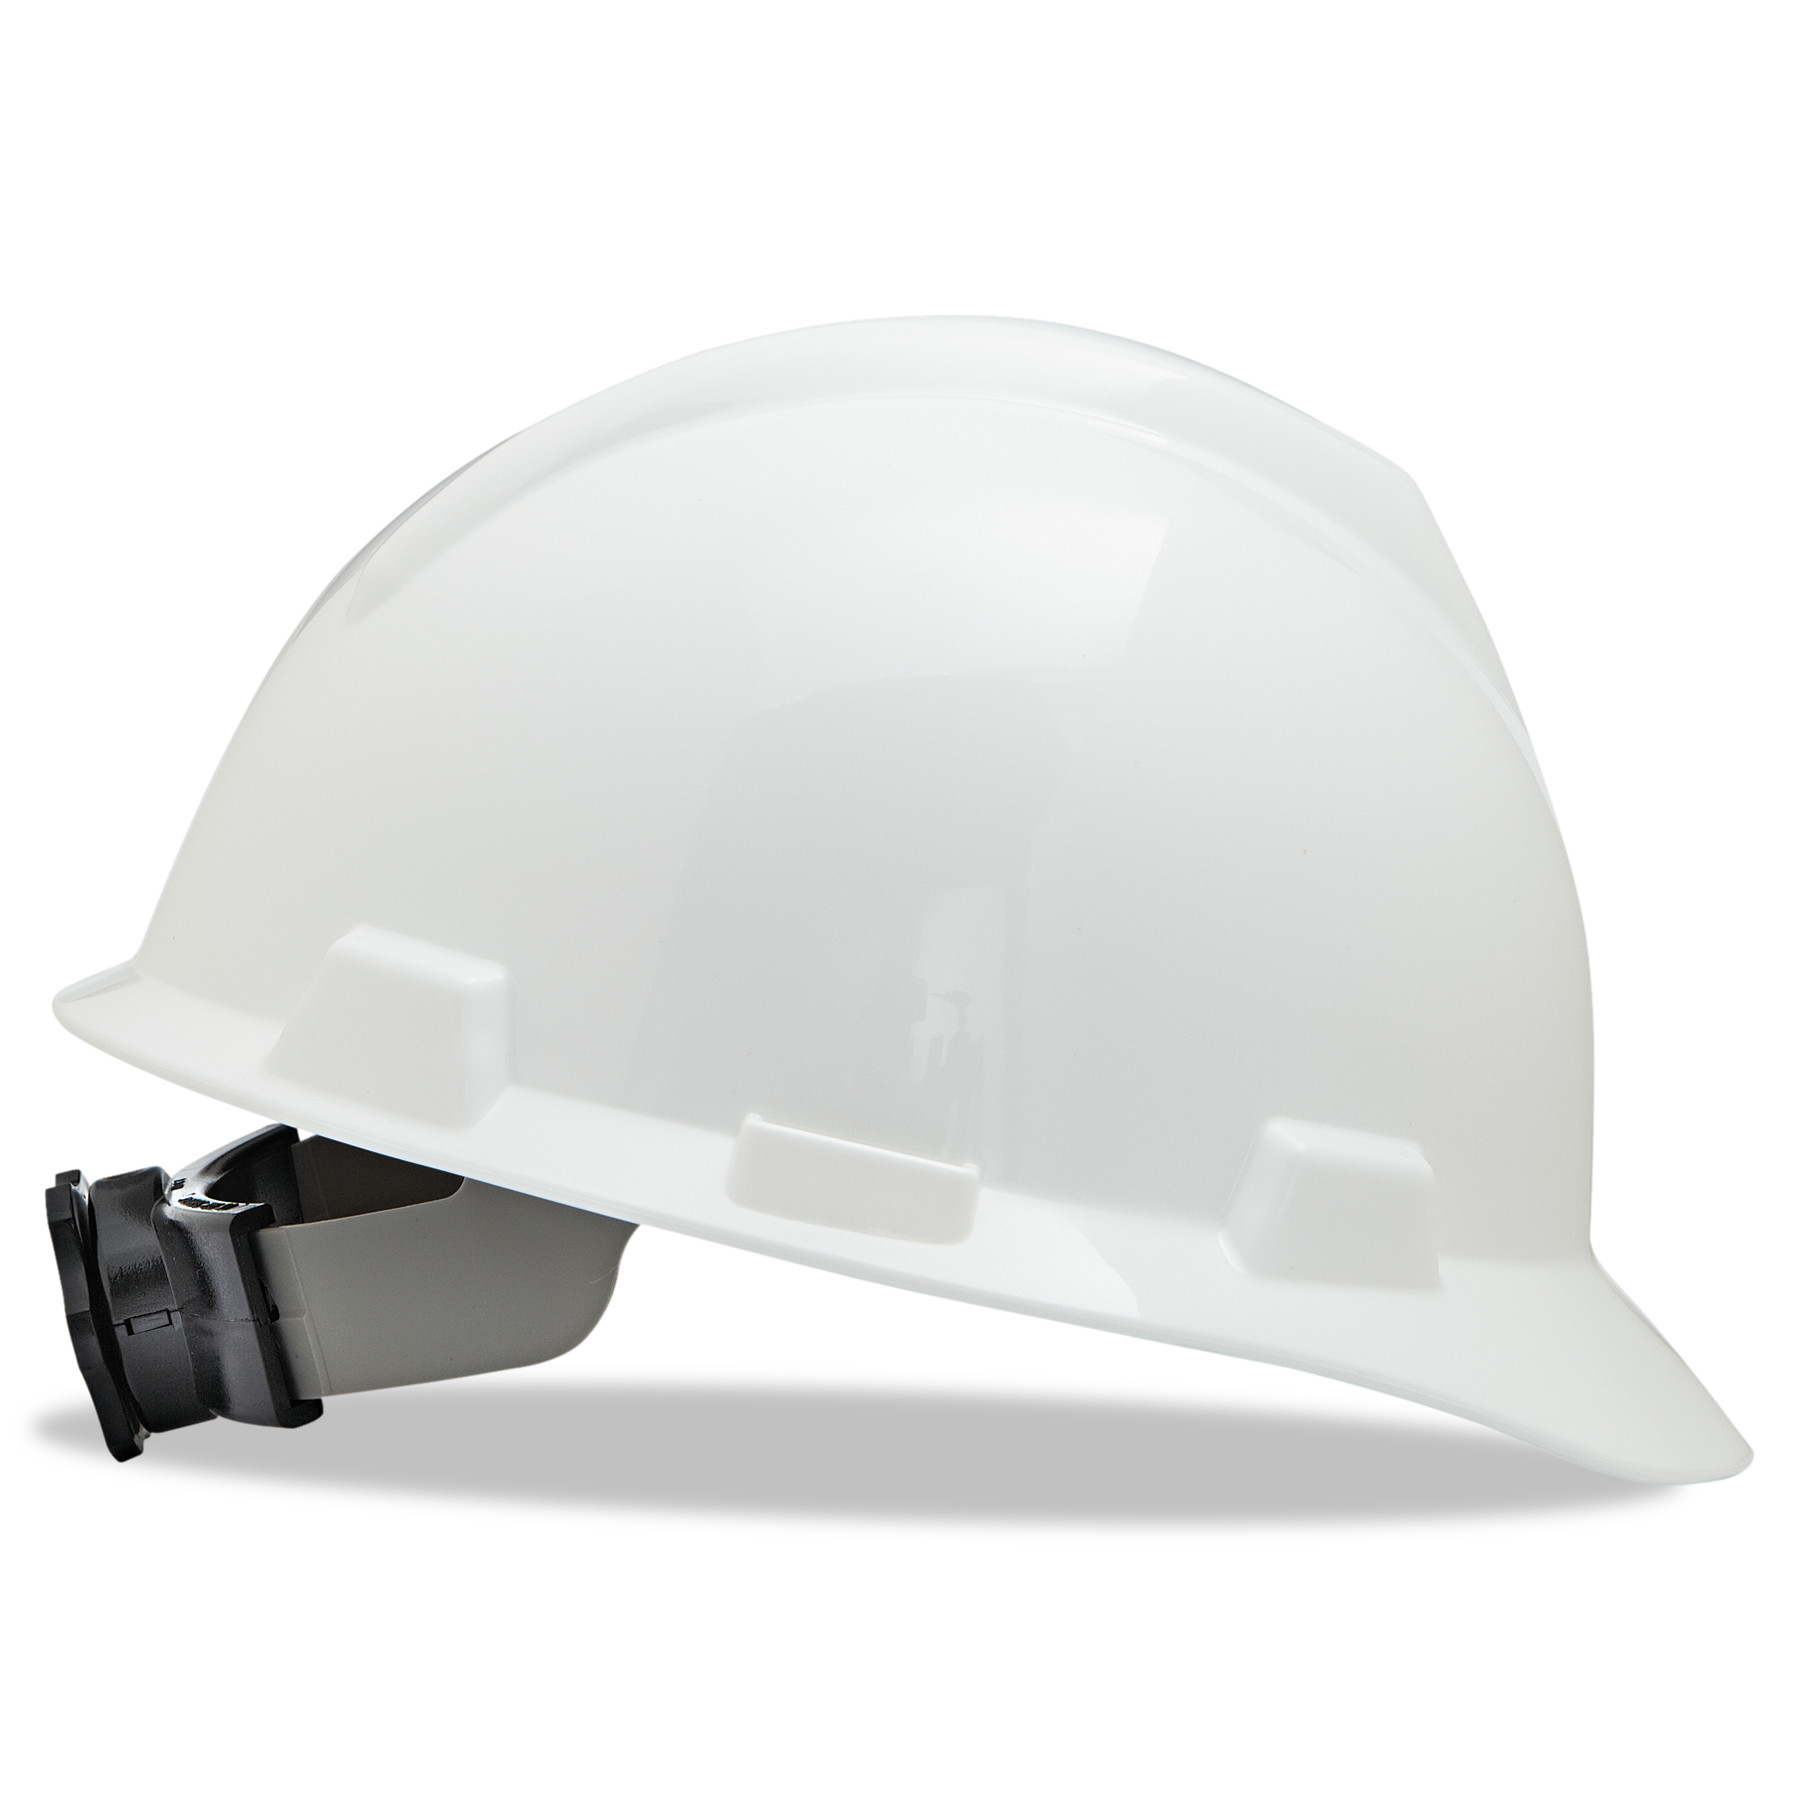 MSA V-Gard Hard Hats w Ratchet Suspension, Large Size 7 1 2 8 1 2, White by SAFETY WORKS